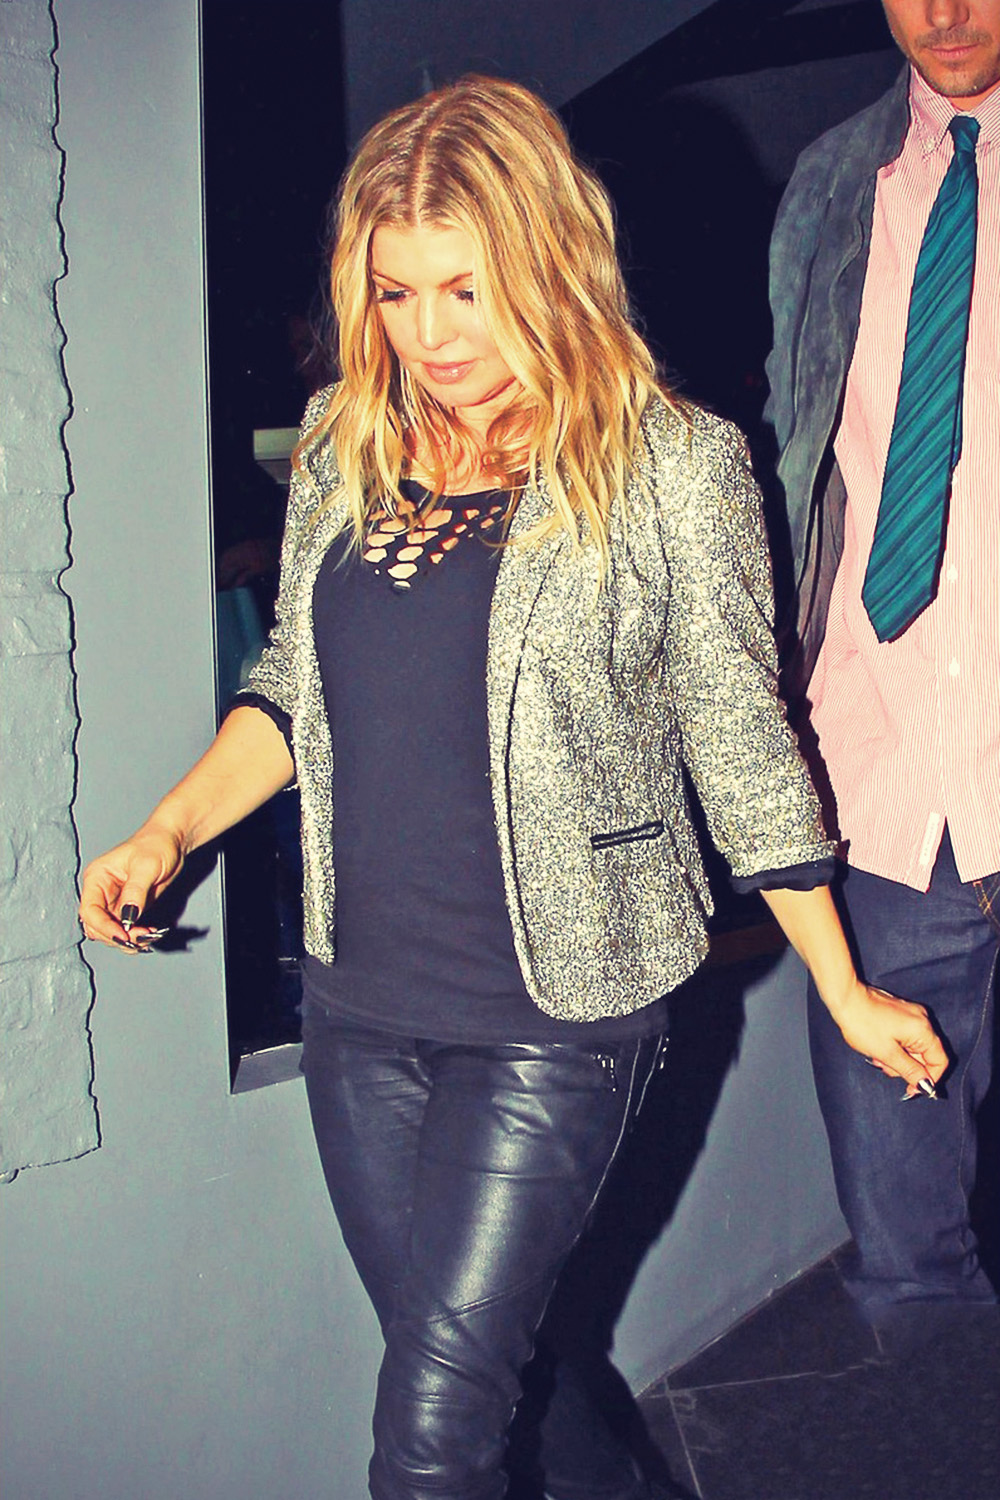 Fergie exiting Smoke Restaurant